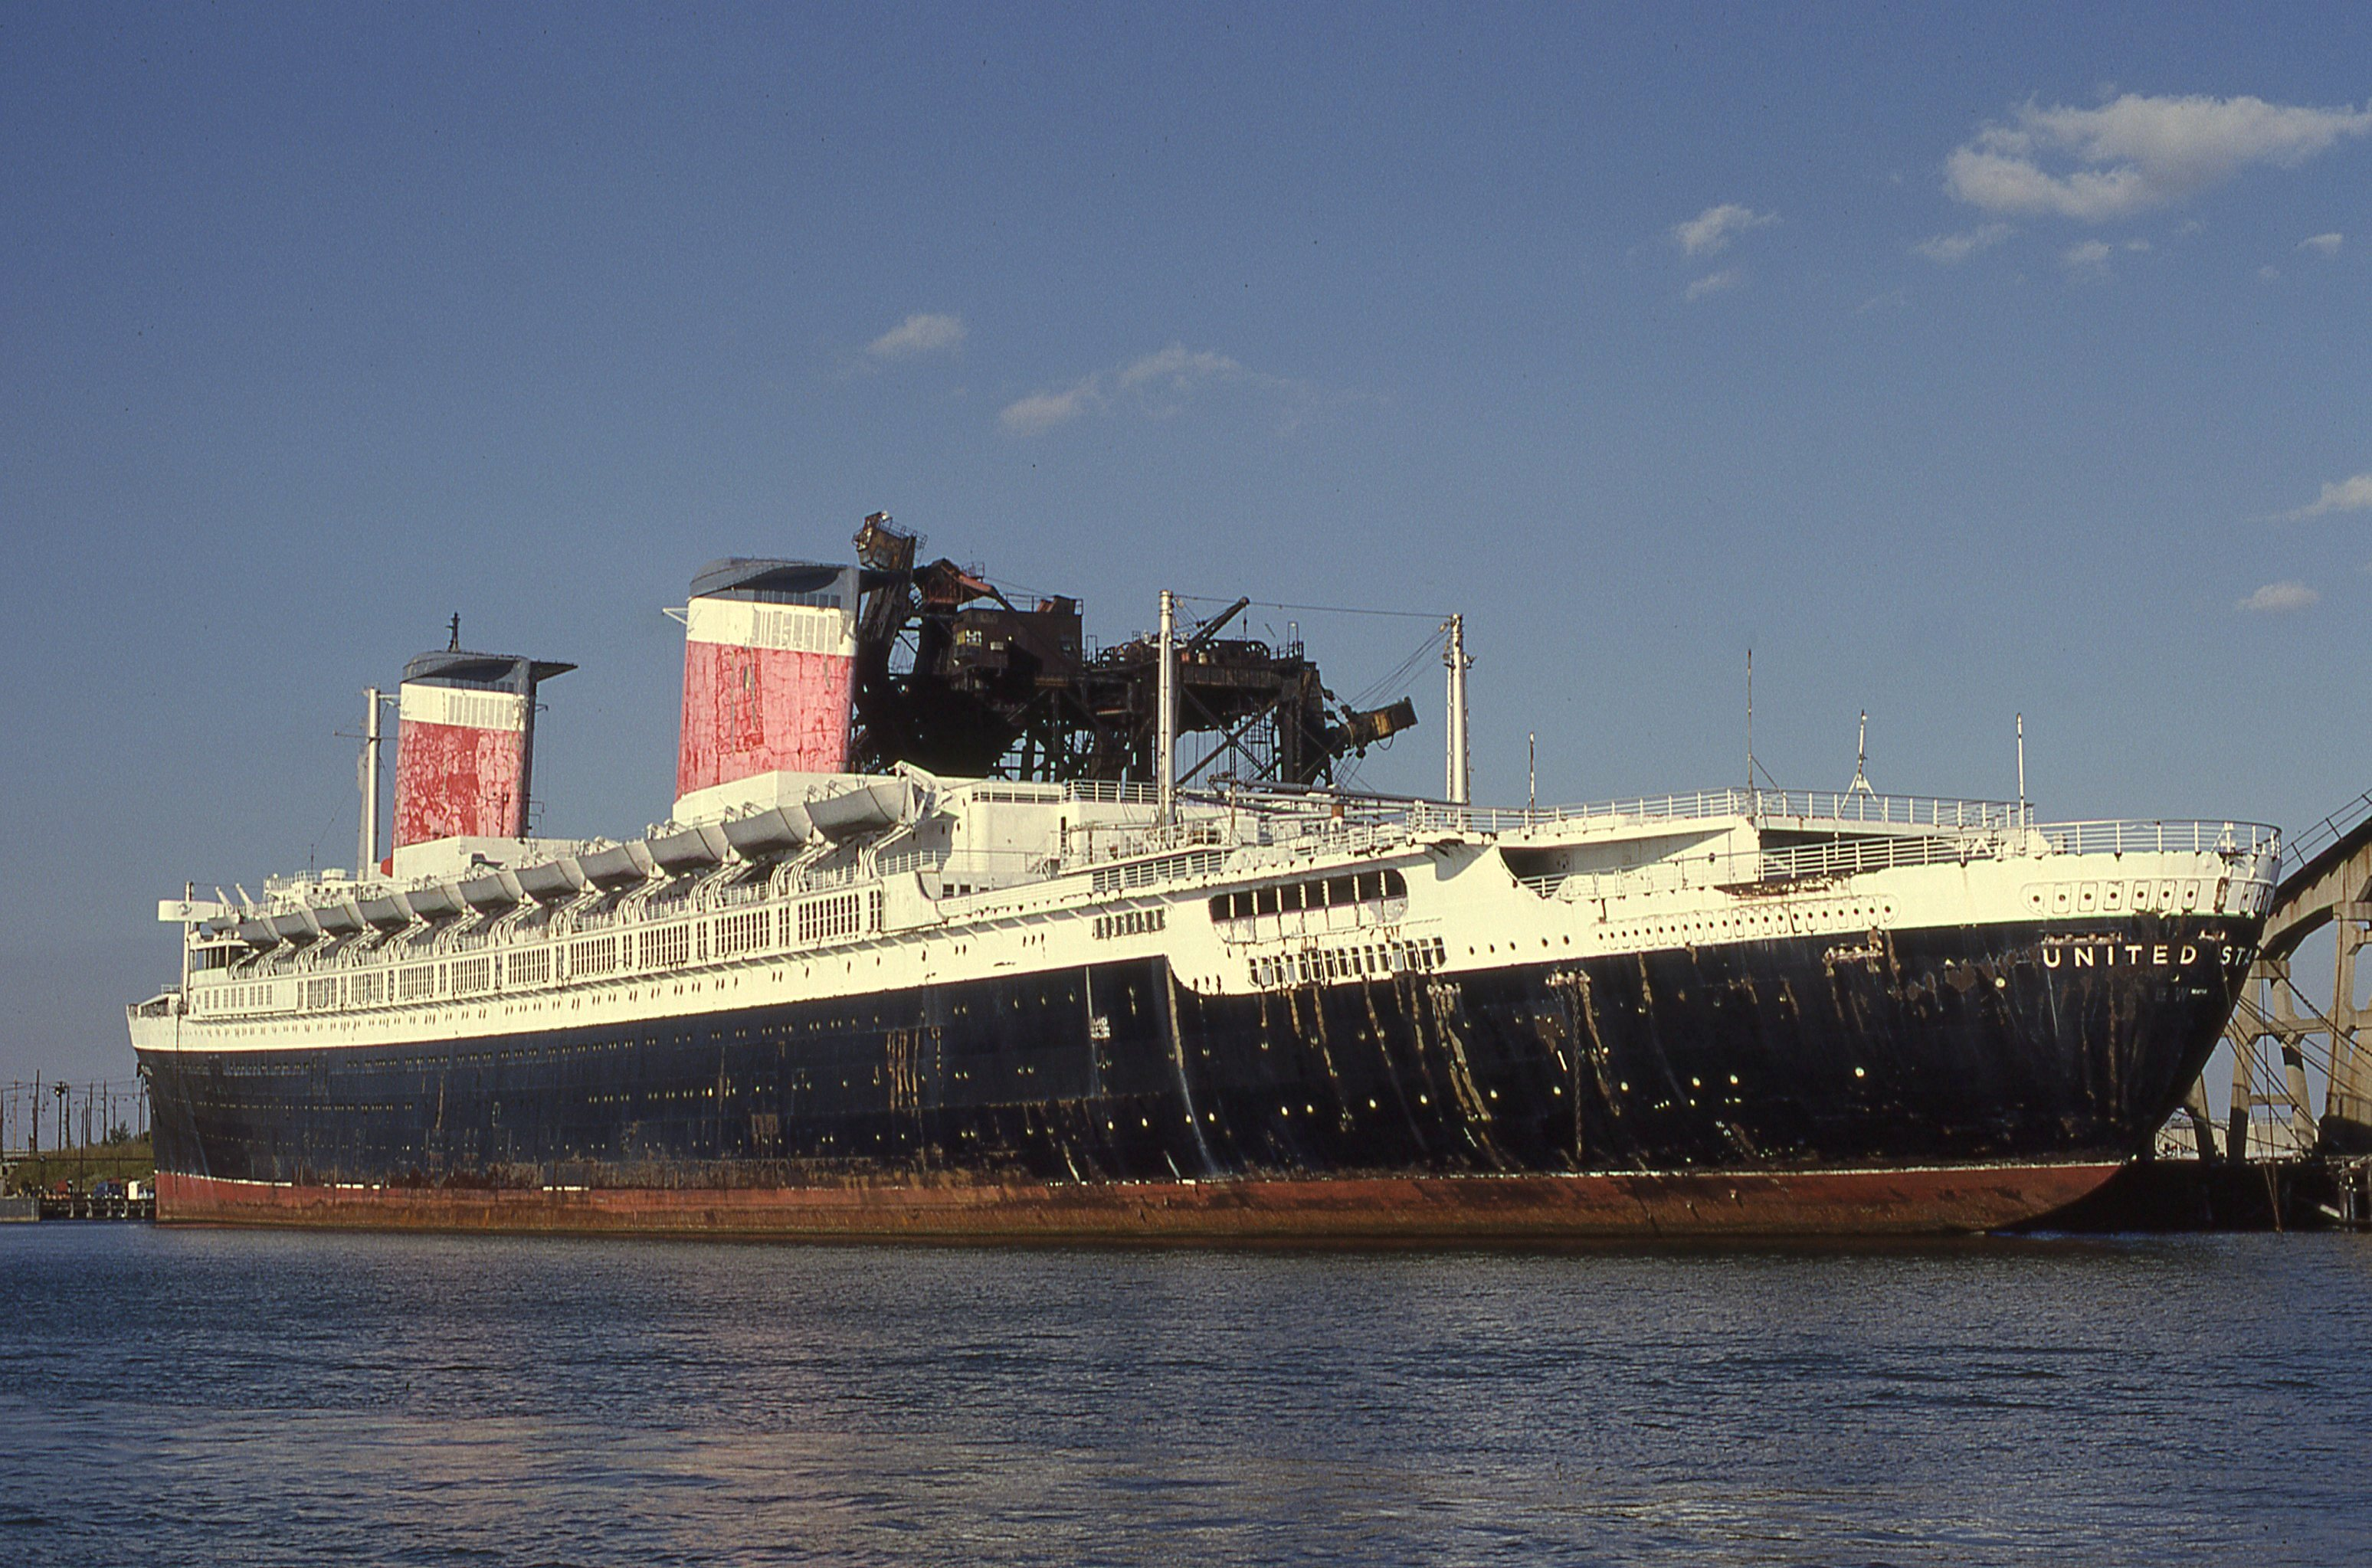 SS United States laid up at Hampton Roads on October 8, 1989